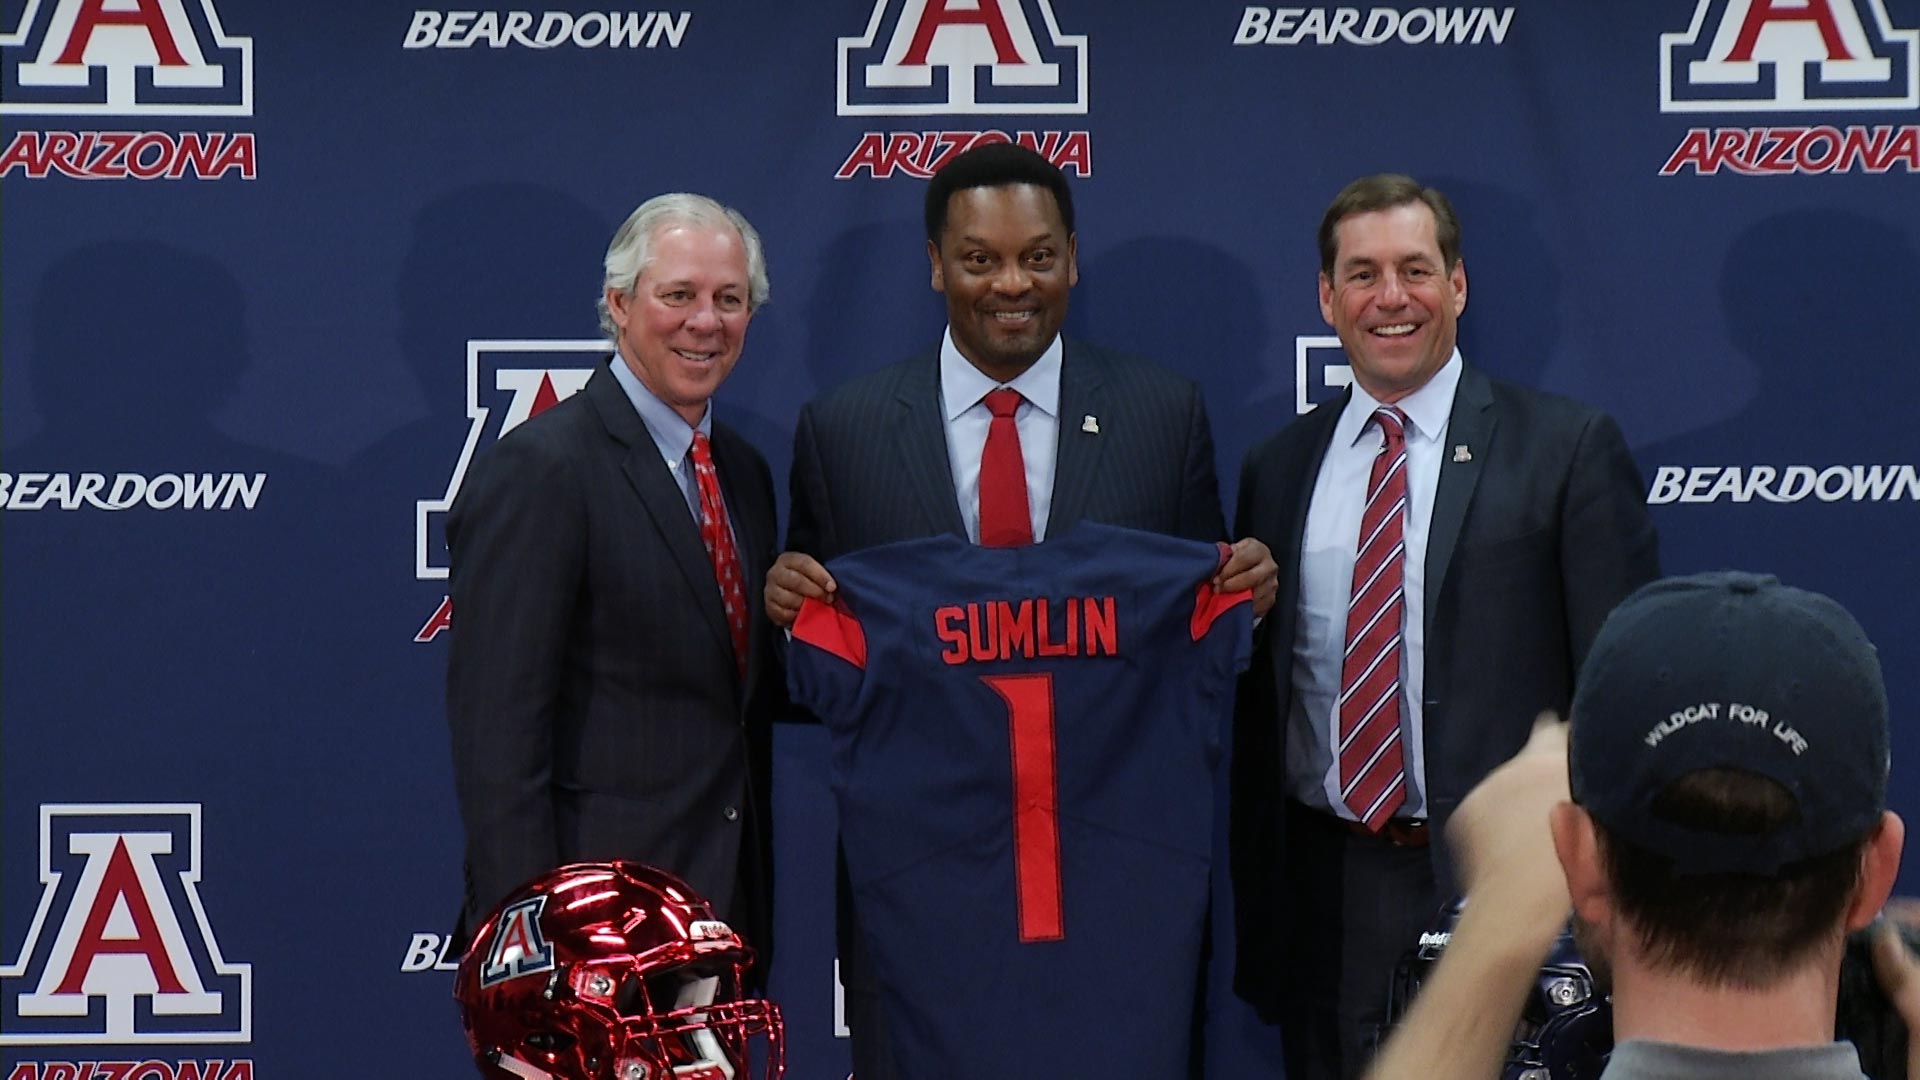 Kevin Sumlin is welcomed as the head coach of Arizona football.